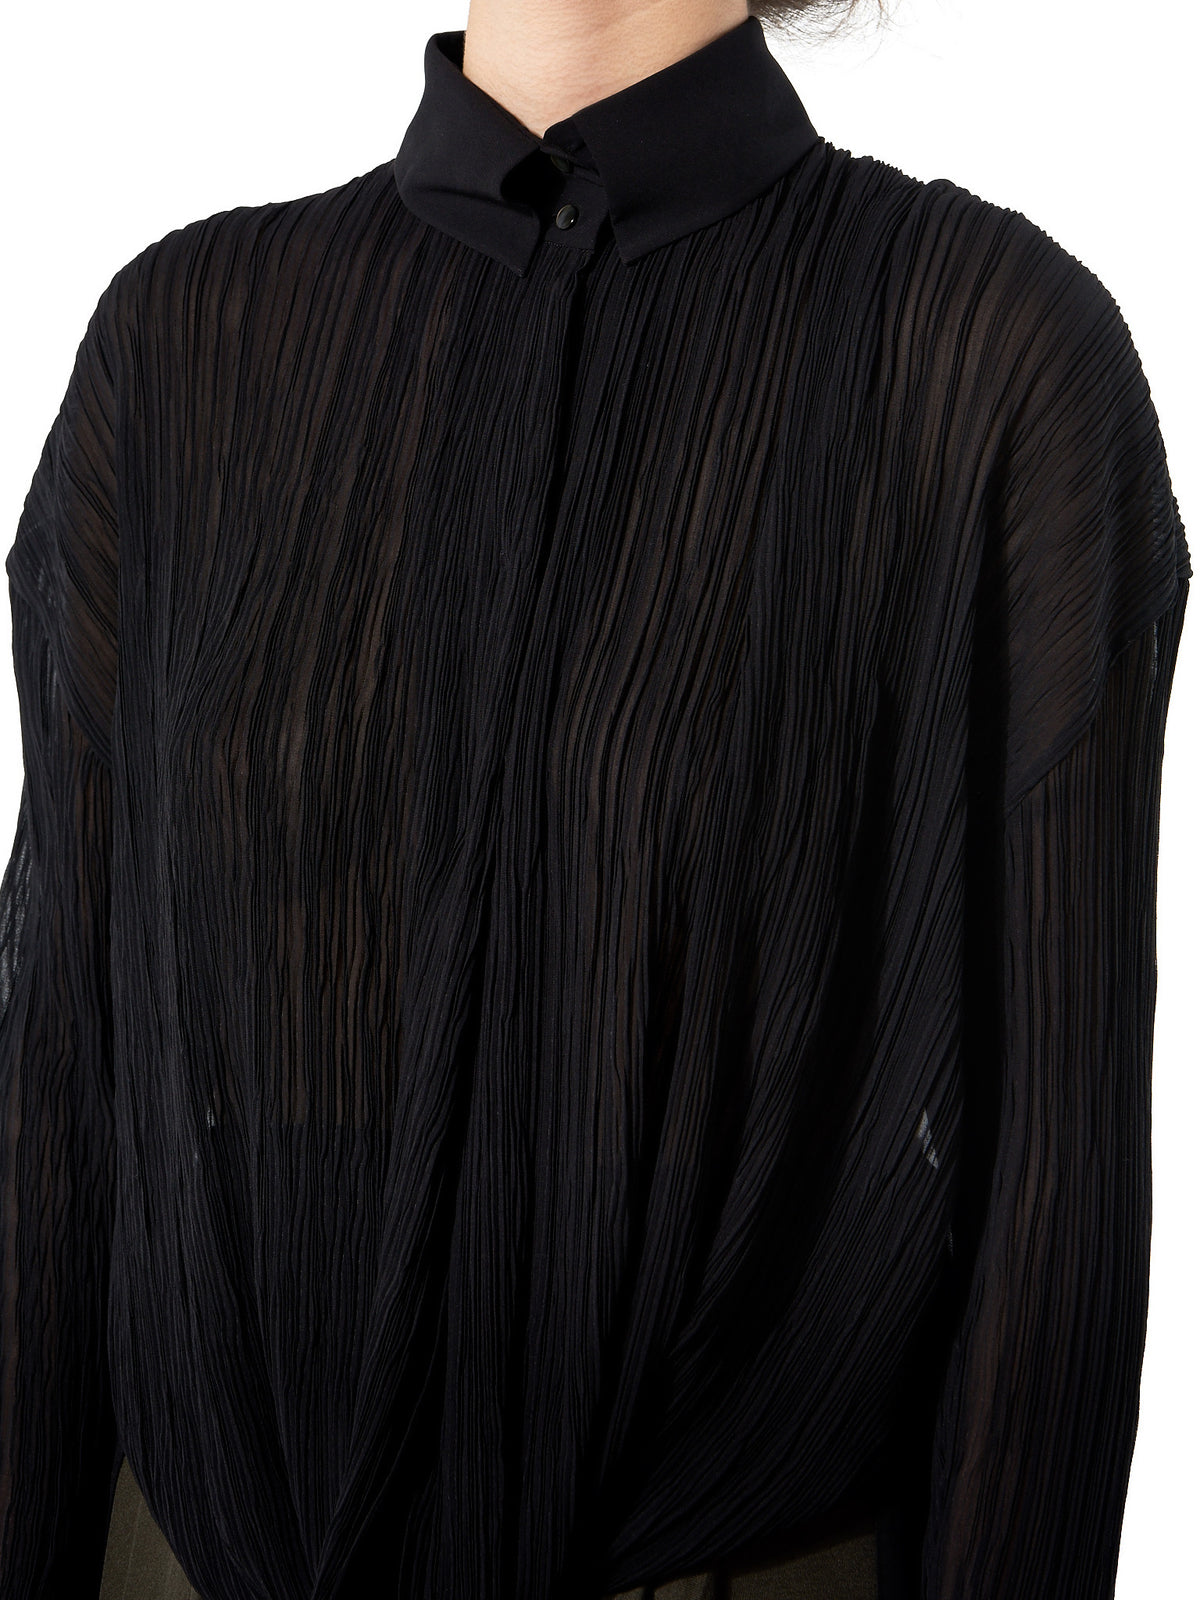 Sheer Pleated Blouse (GLS-DR69-BLACK) - H. Lorenzo